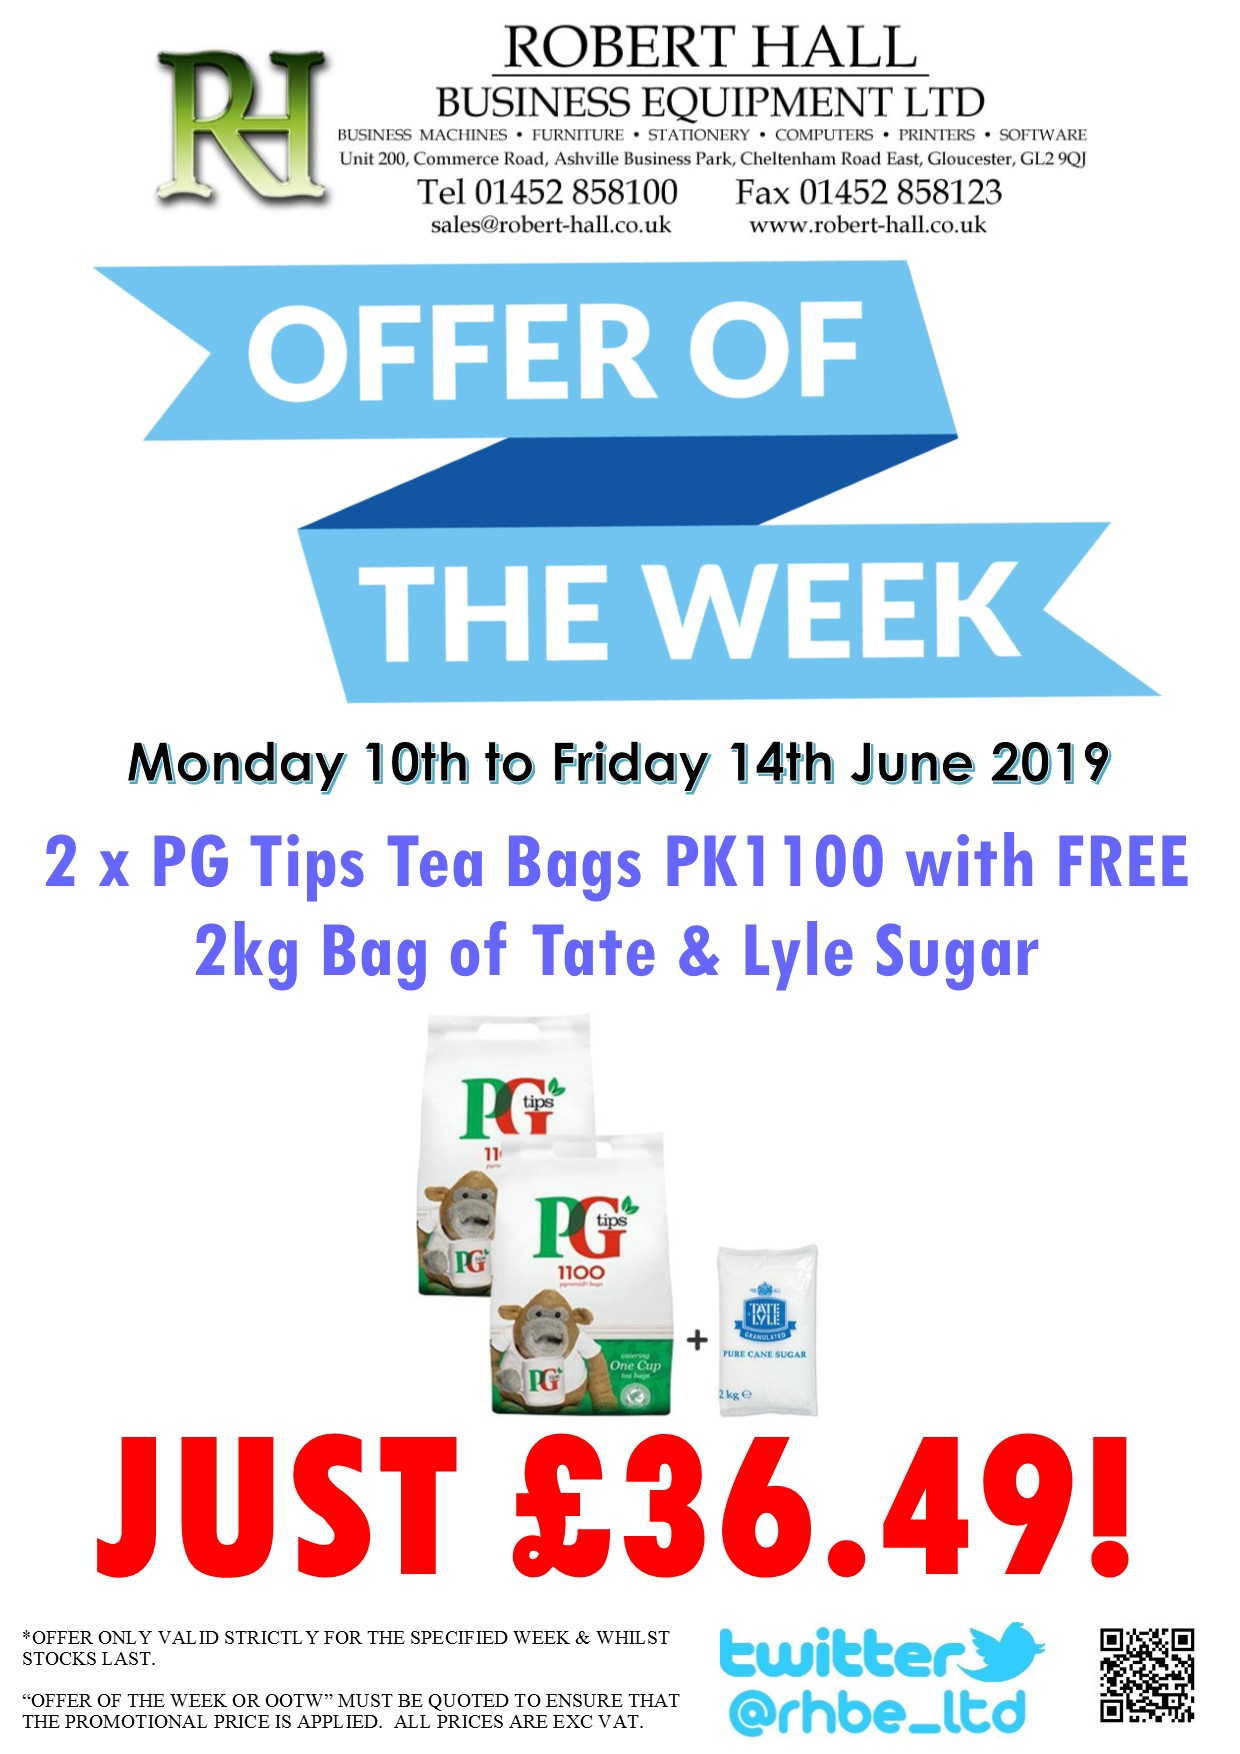 Offer Of The Week: PG Tips Tea Bags 2x1100 with FREE Sugar